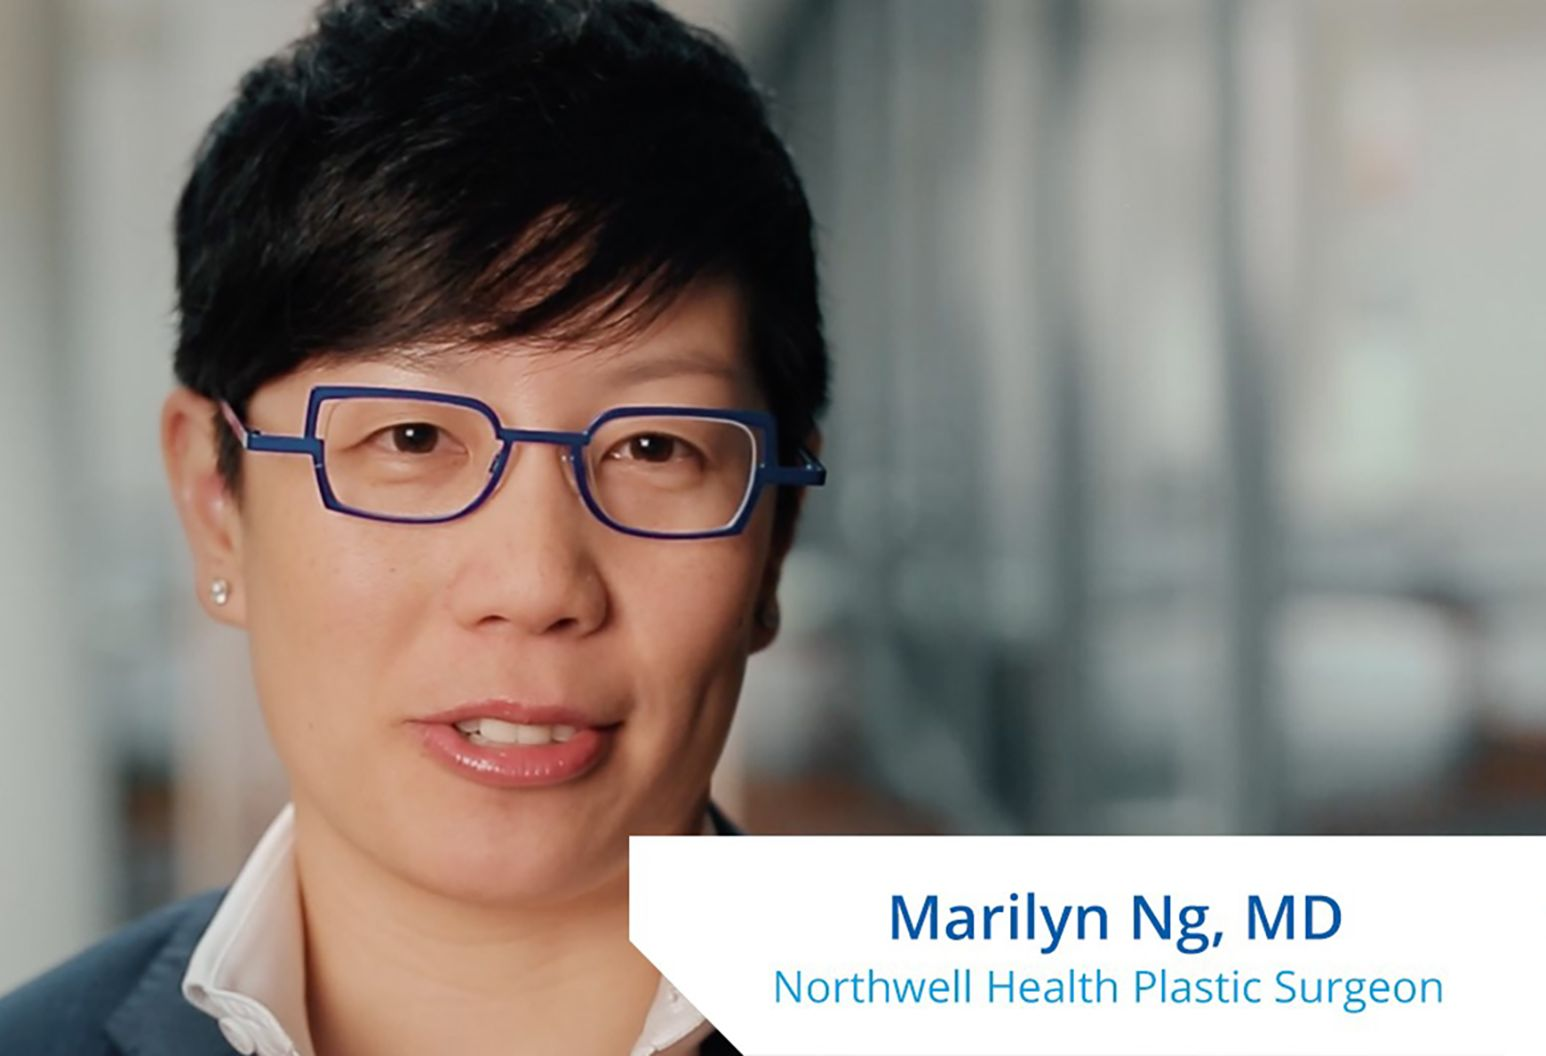 """An asian woman with short black hair wearing bright blue glasses speaks to the camera. On the lower right corner of the photo it reads, """"Marilyn Ng, MD. Northwell Health Plastic Surgeon."""""""